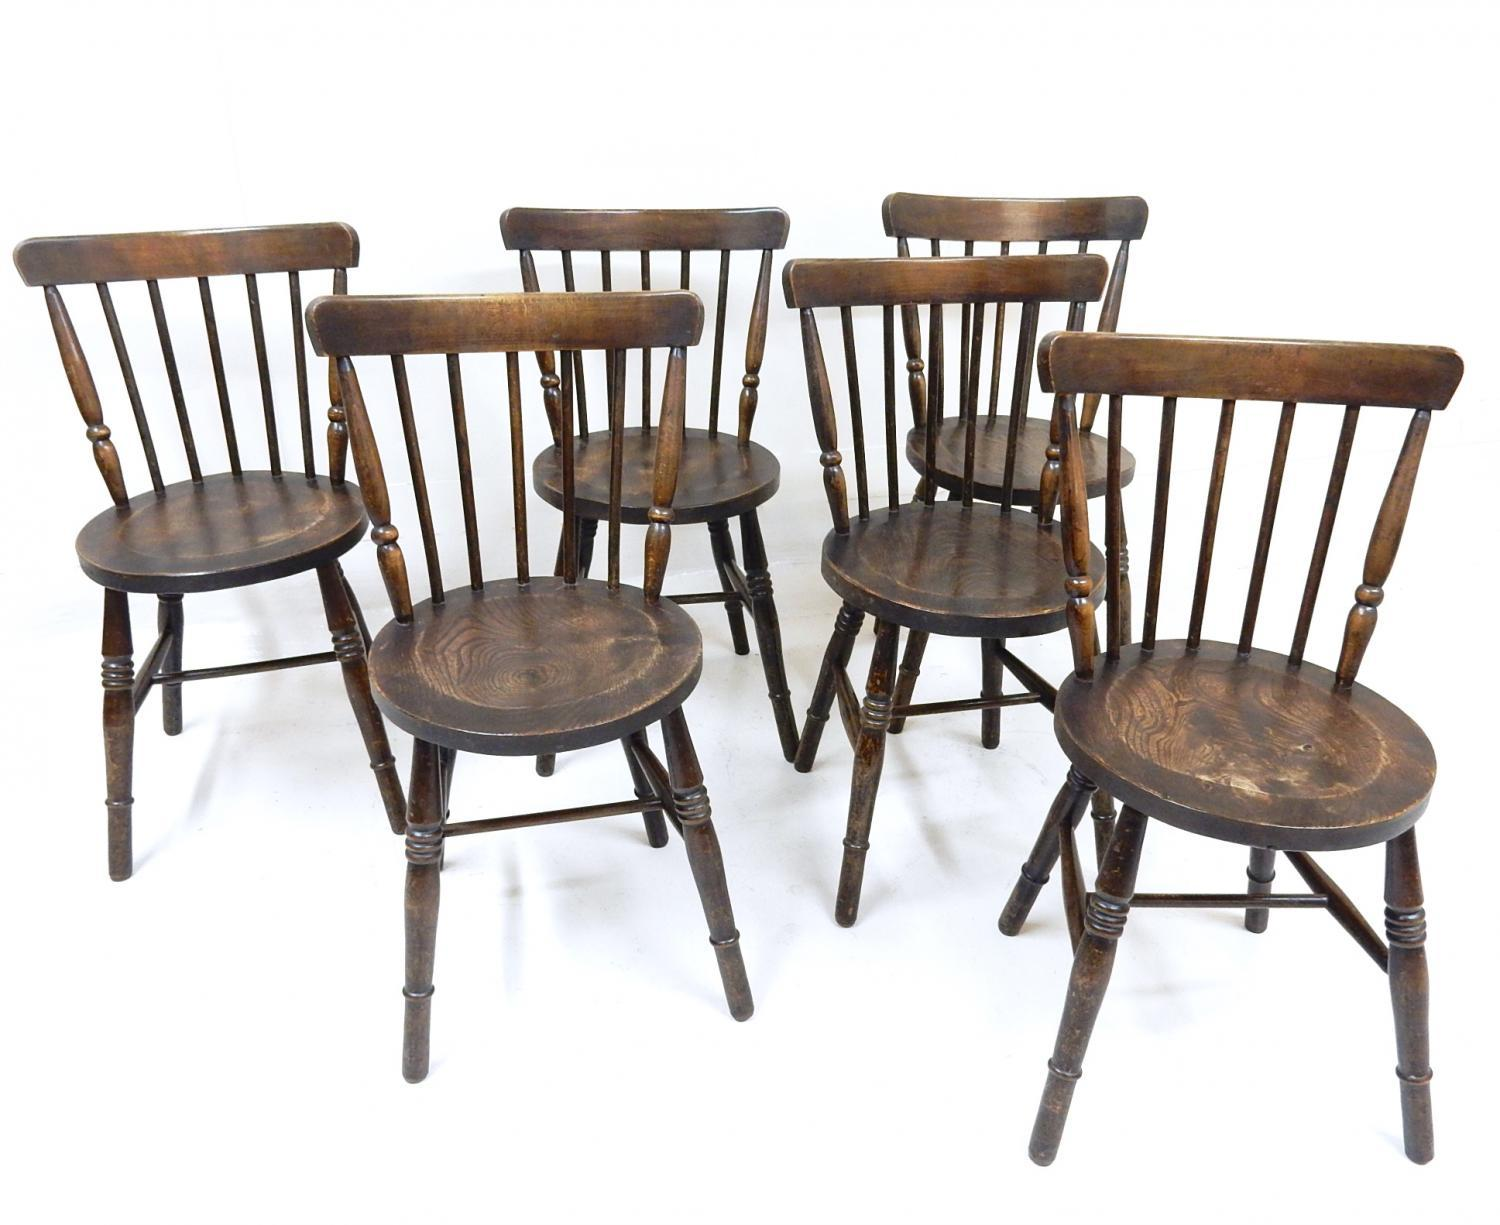 Country Kitchen Chairs Country Kitchen Chairs In Sold